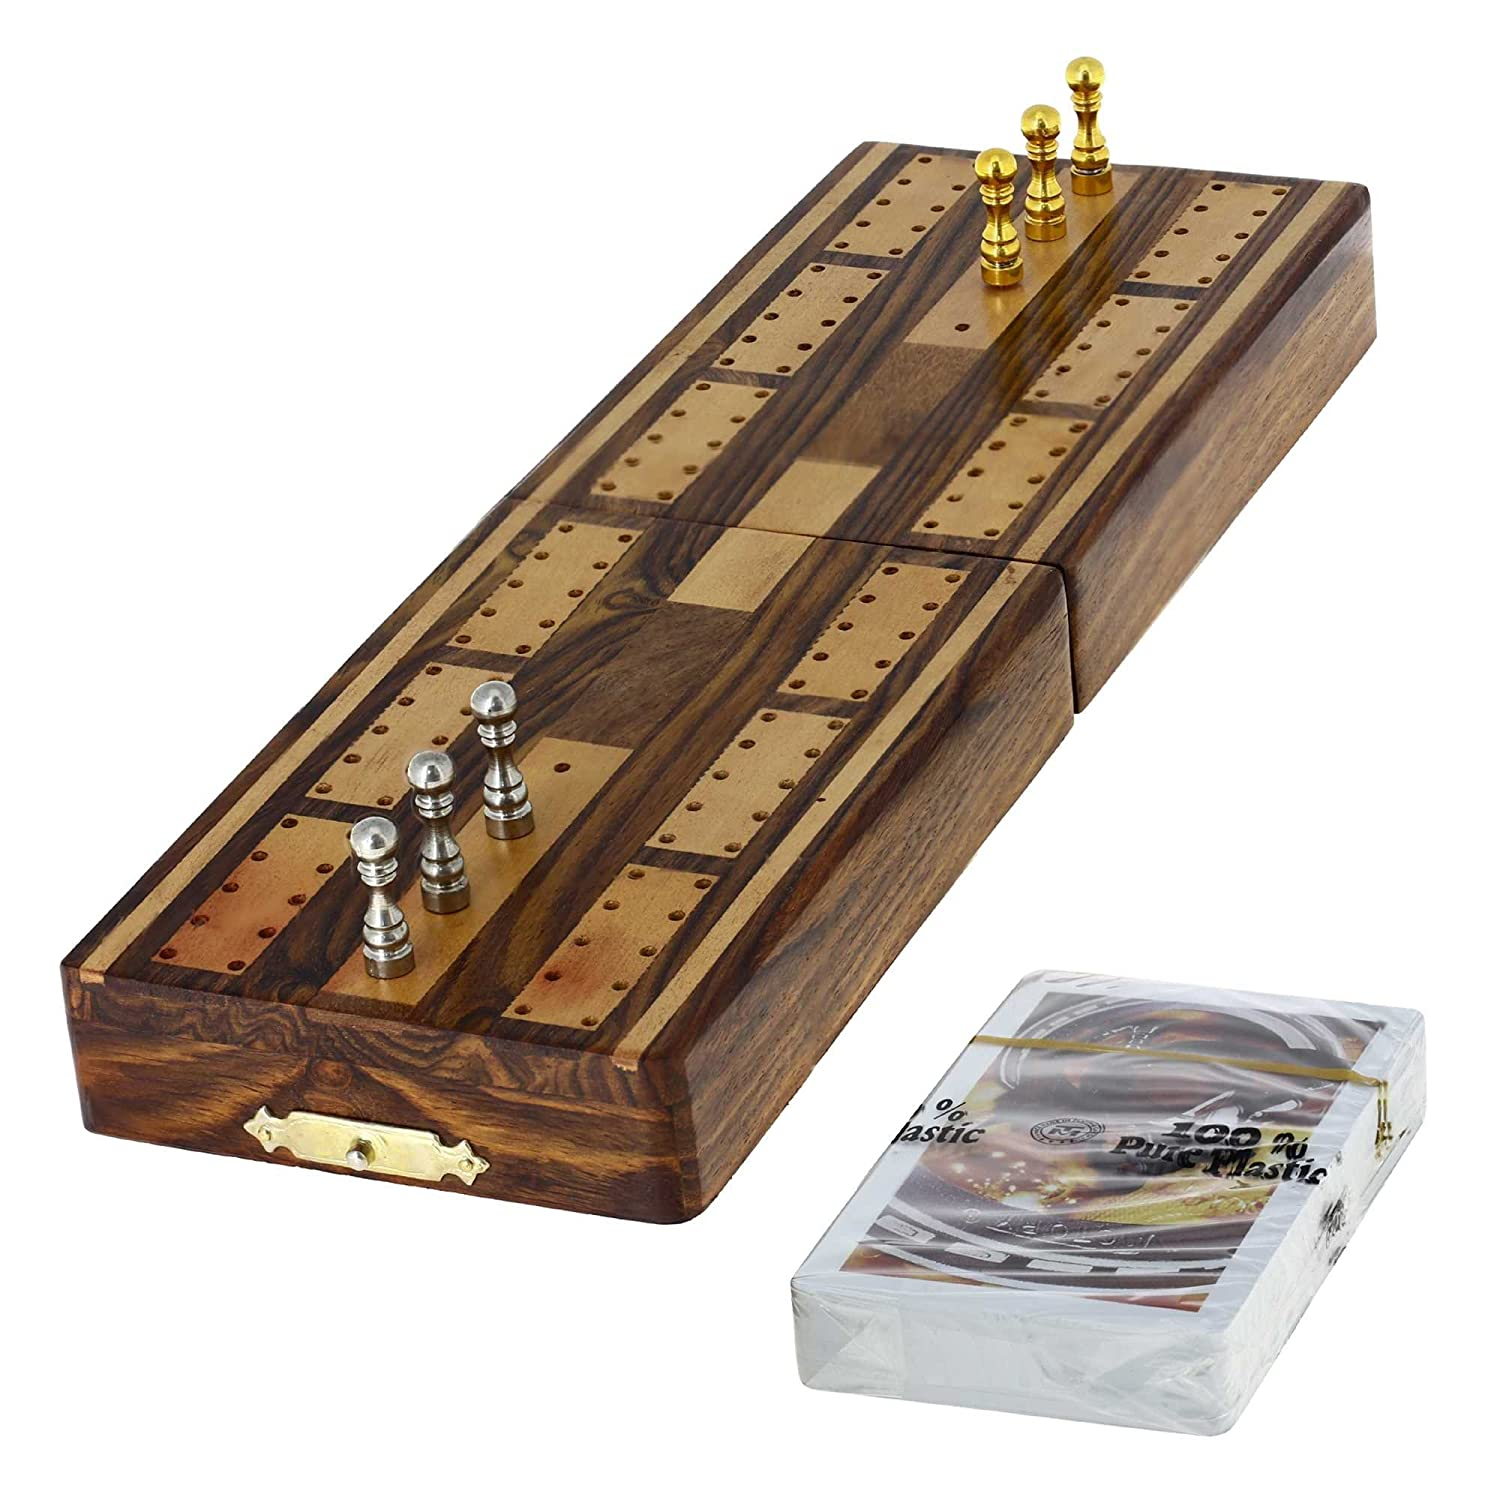 Crib boards for sale uk - Amazon Com Game Cribbage Boards And Pegs Set With Storage By Shalinindia Sports Outdoors